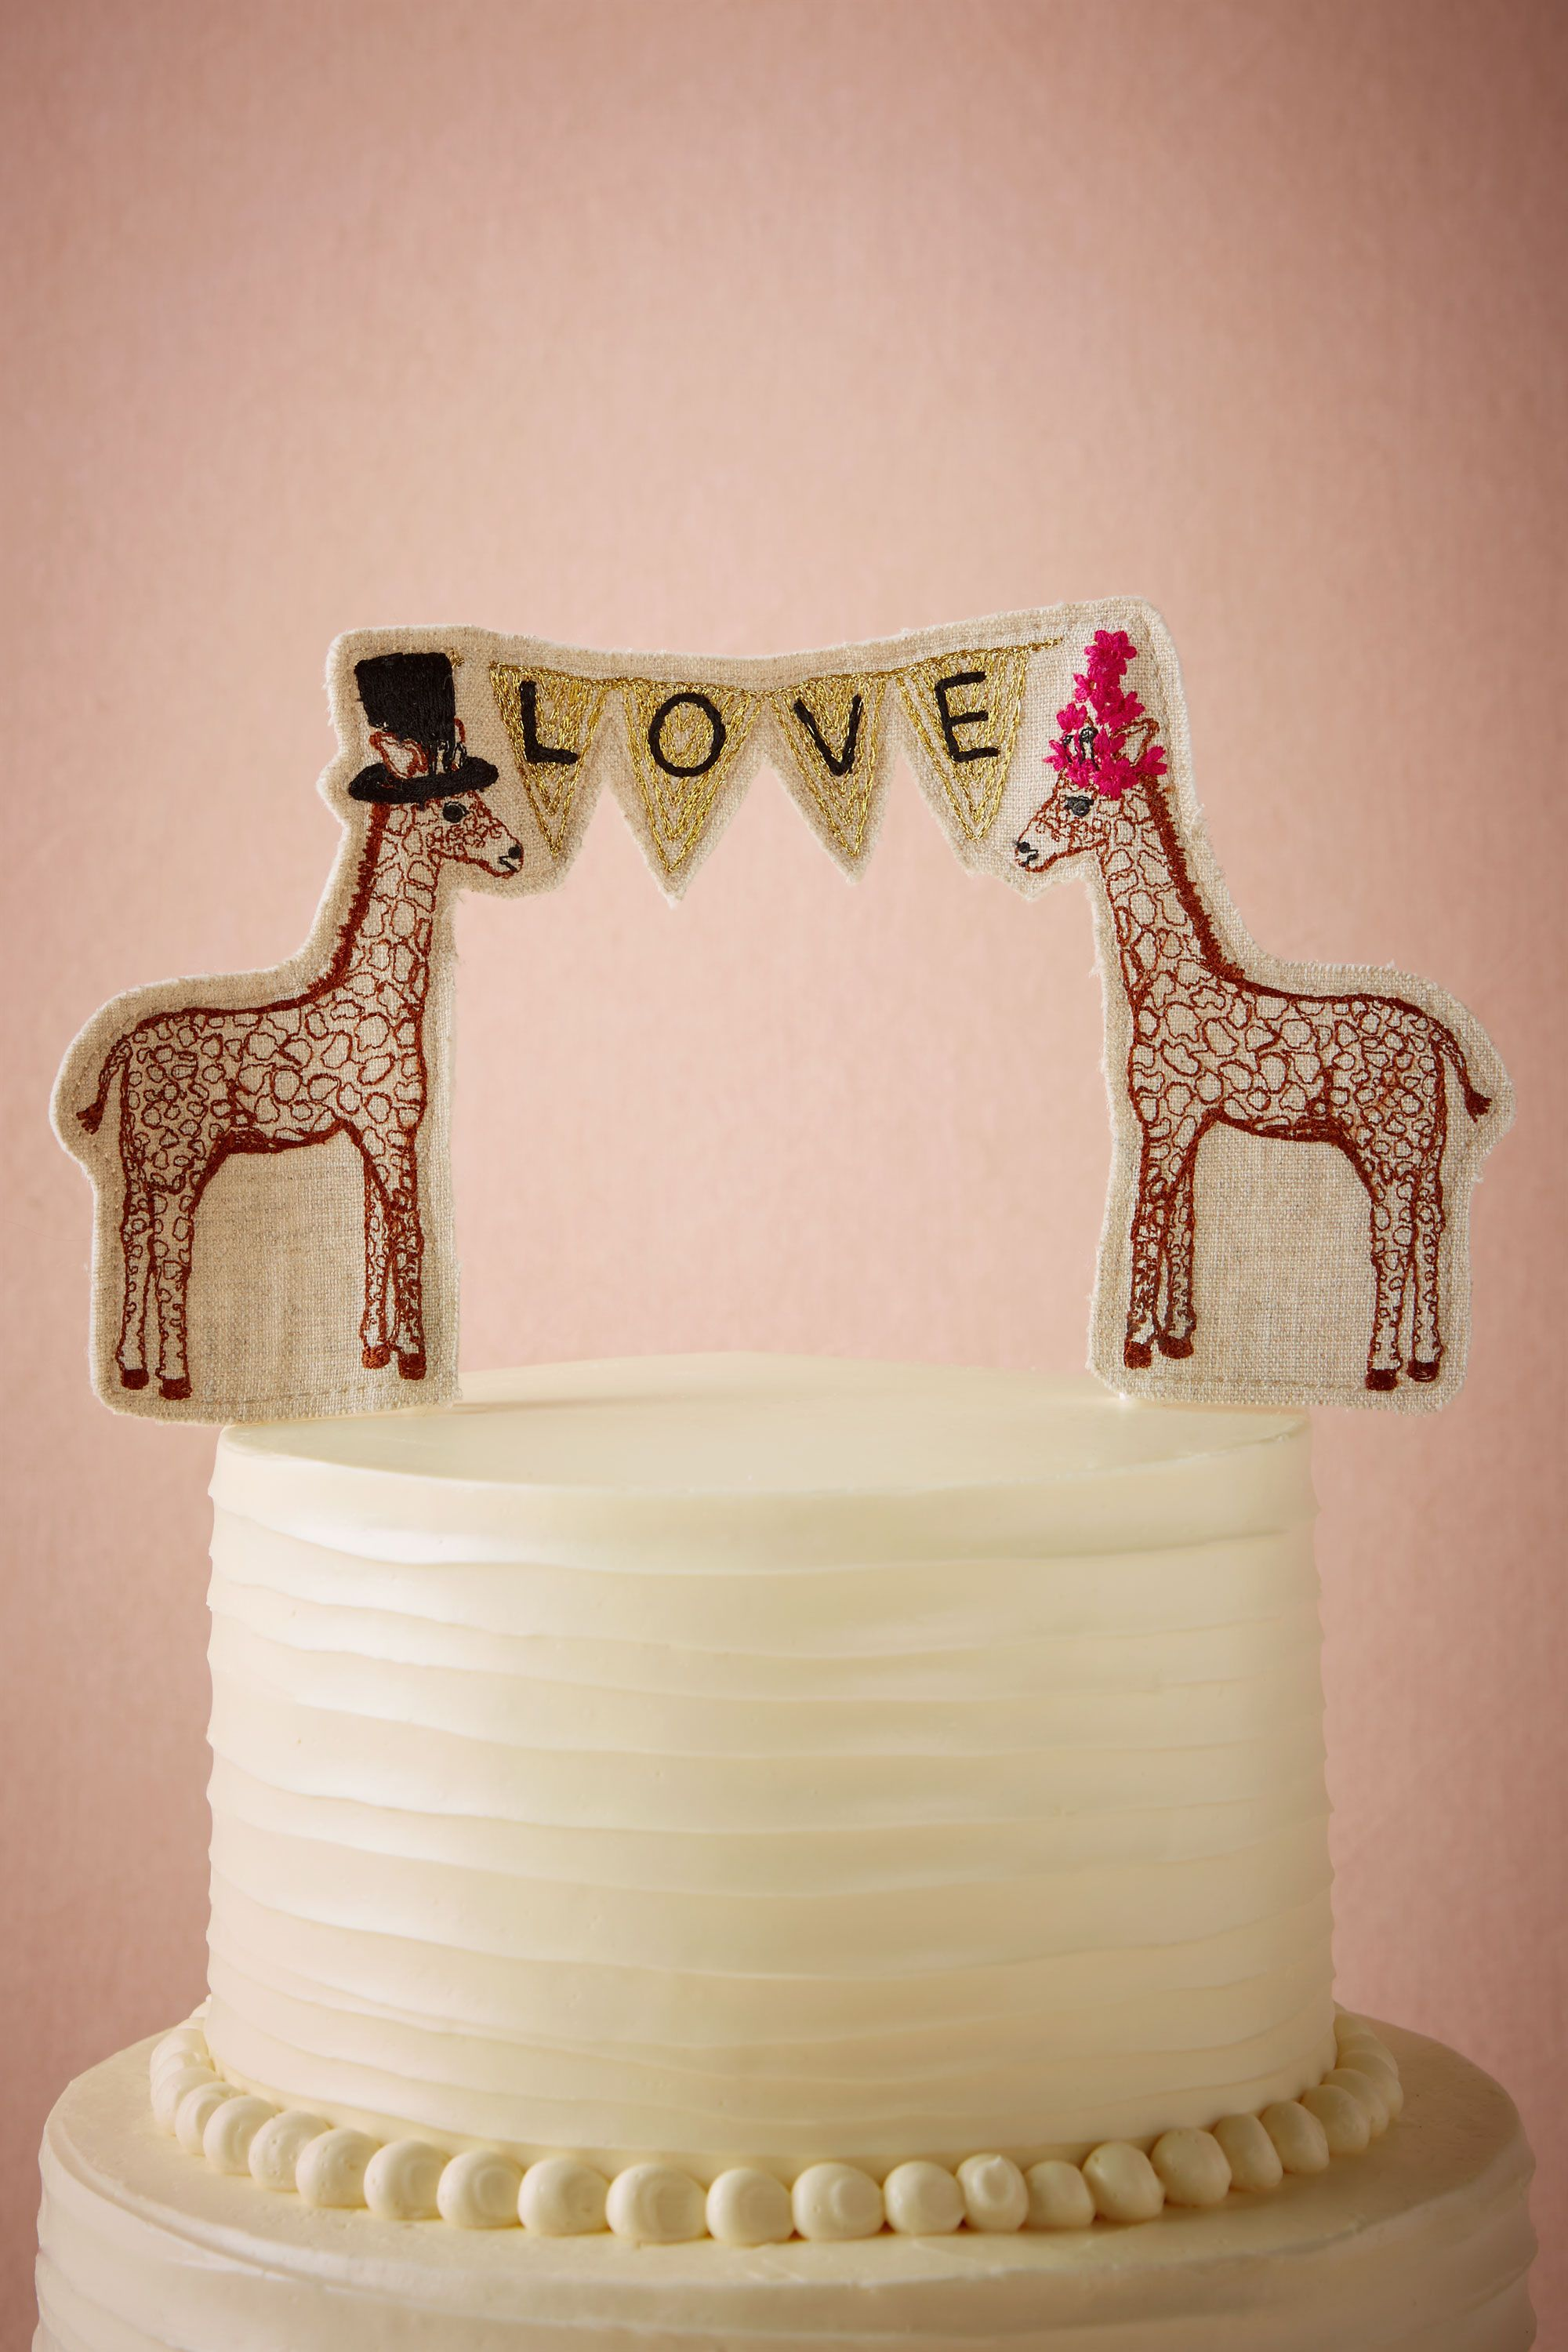 Cake Accessories Gifts : Lovesome Giraffes Cake Topper in Decor & Gifts BHLDN